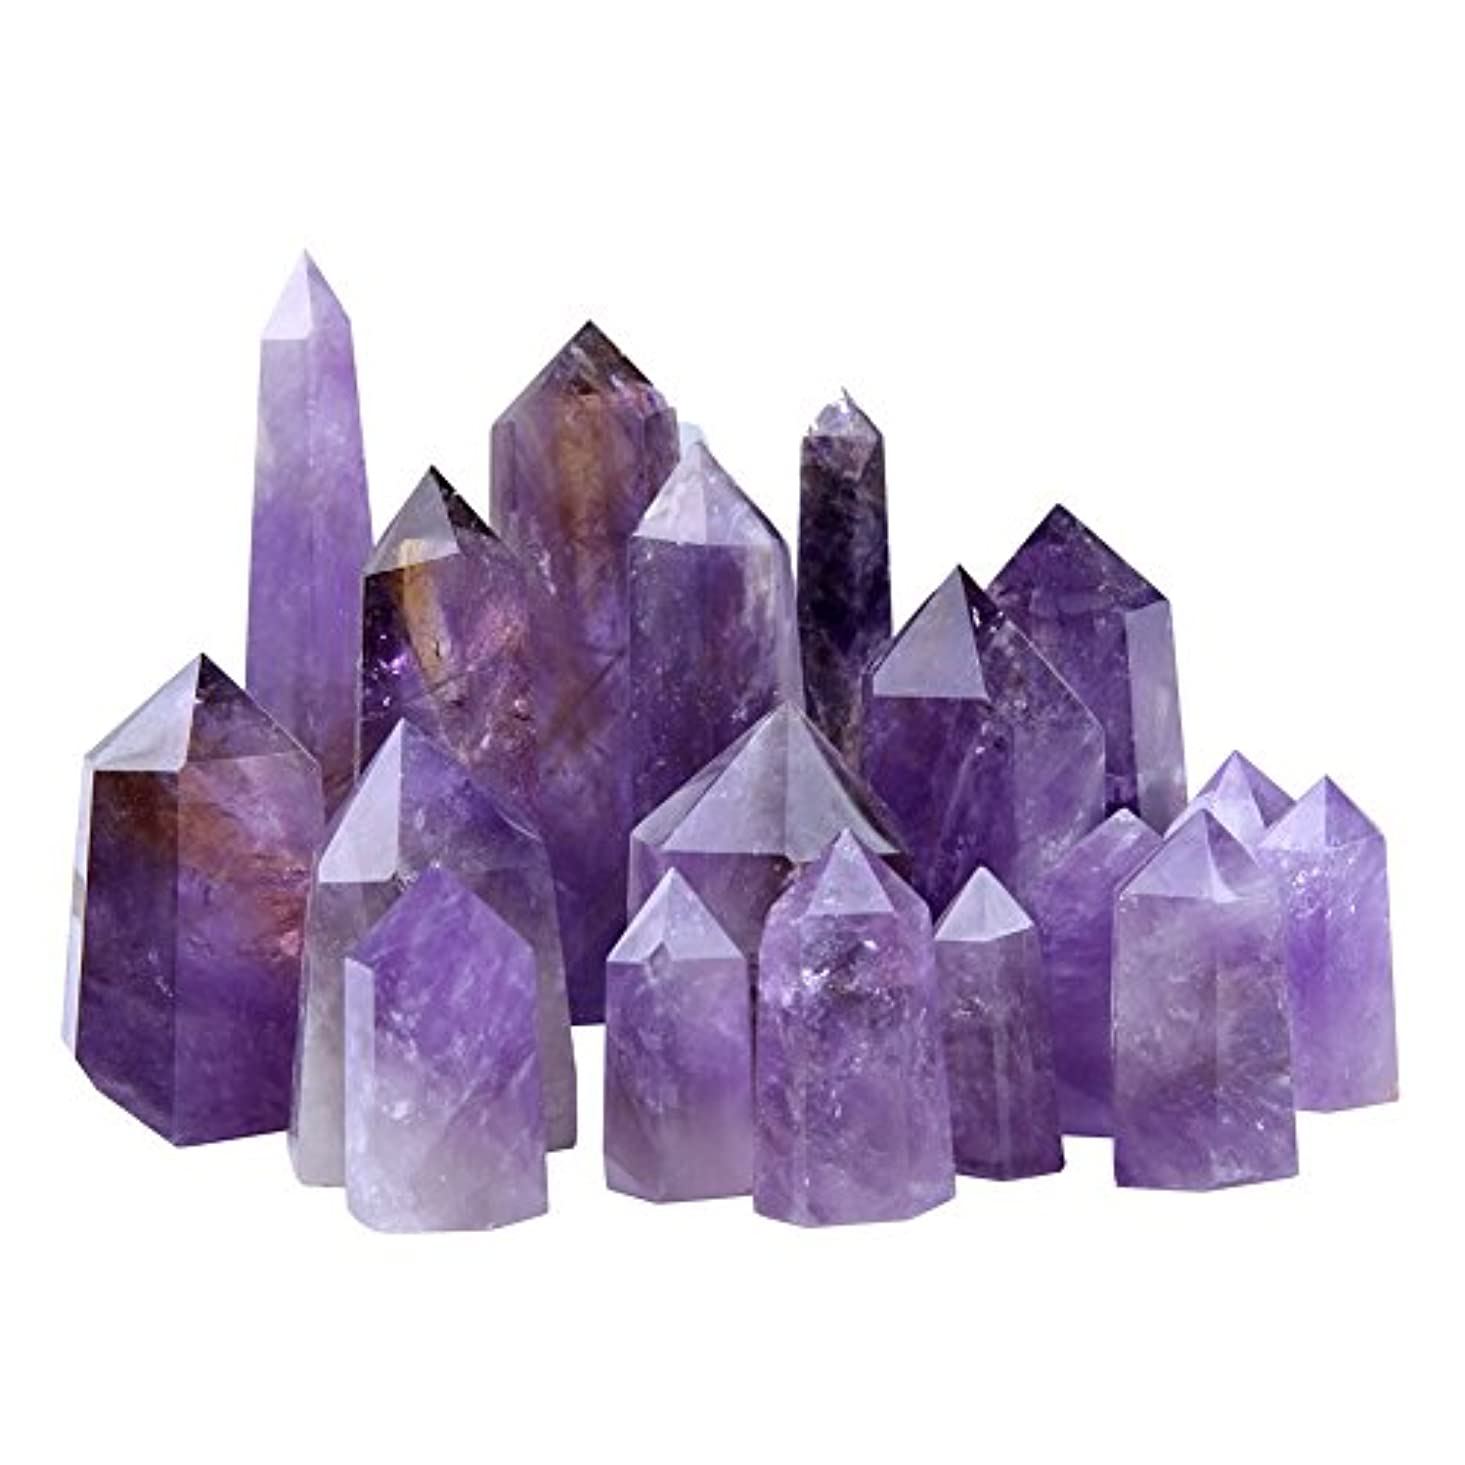 名前を作る広告政令(Amethyst 2) - Natural Purple Crystal Point 6 Faceted Amethyst Wand, 0.5kg for Healing, Reiki, Grids, Figurine...